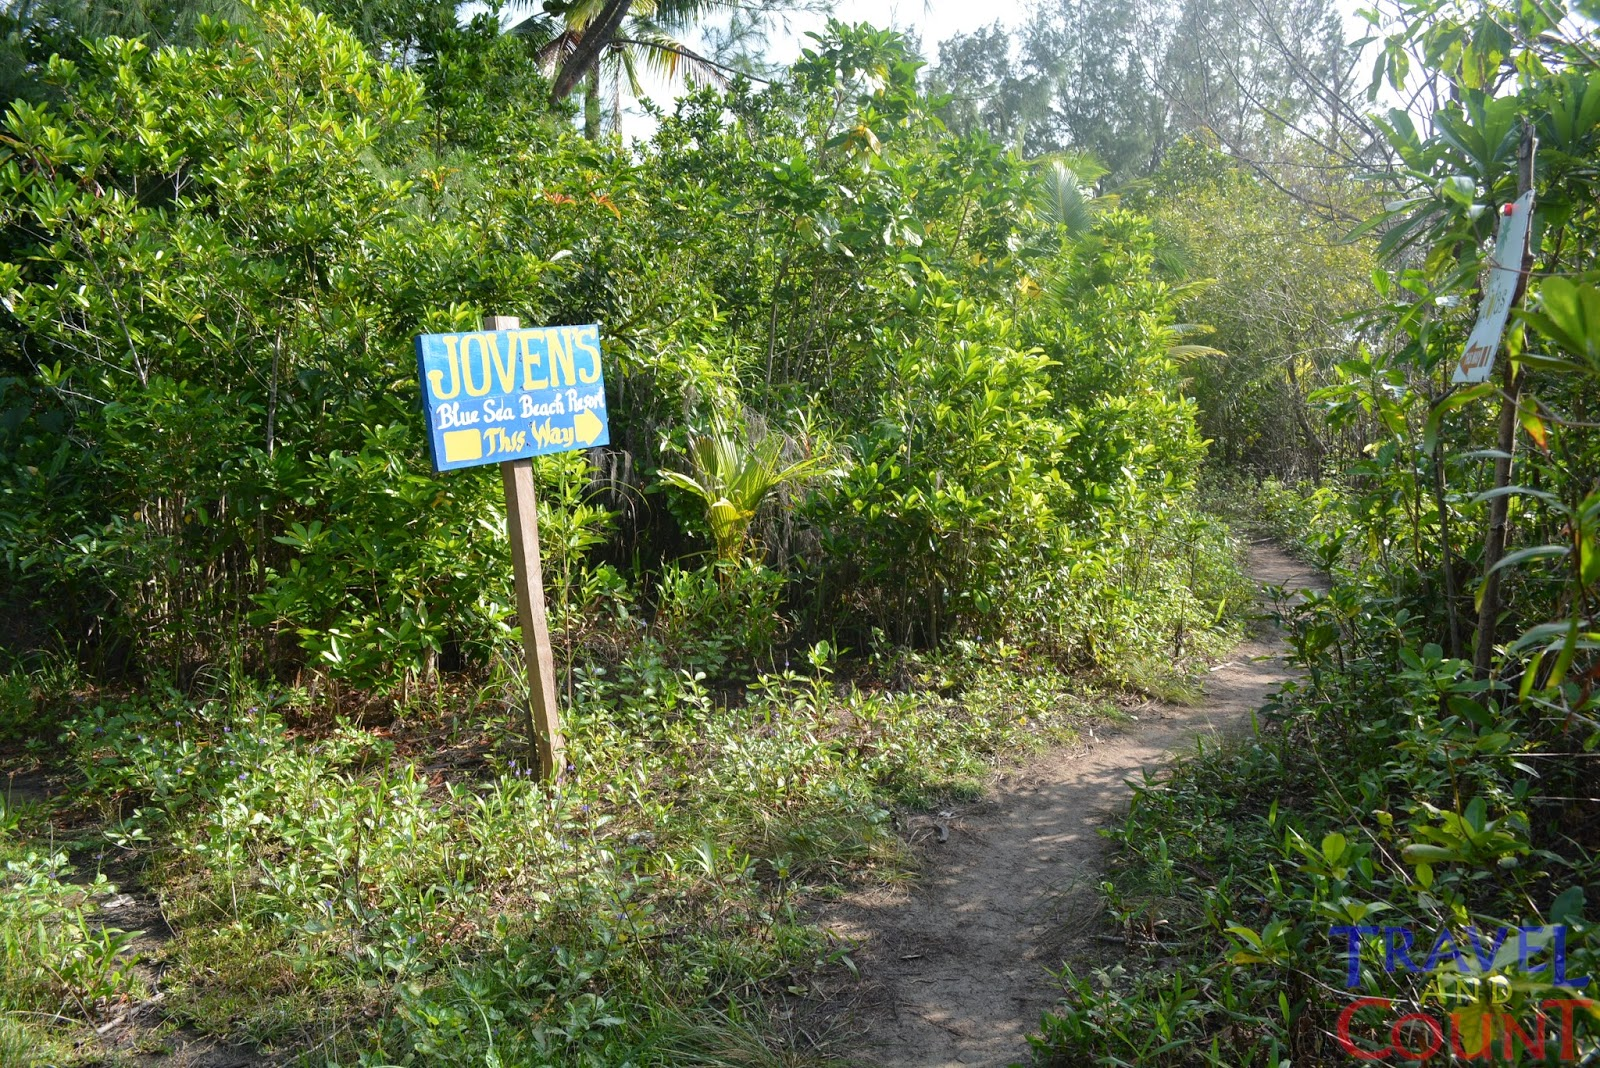 Signboards going to Jovens Resort, Cagbalete